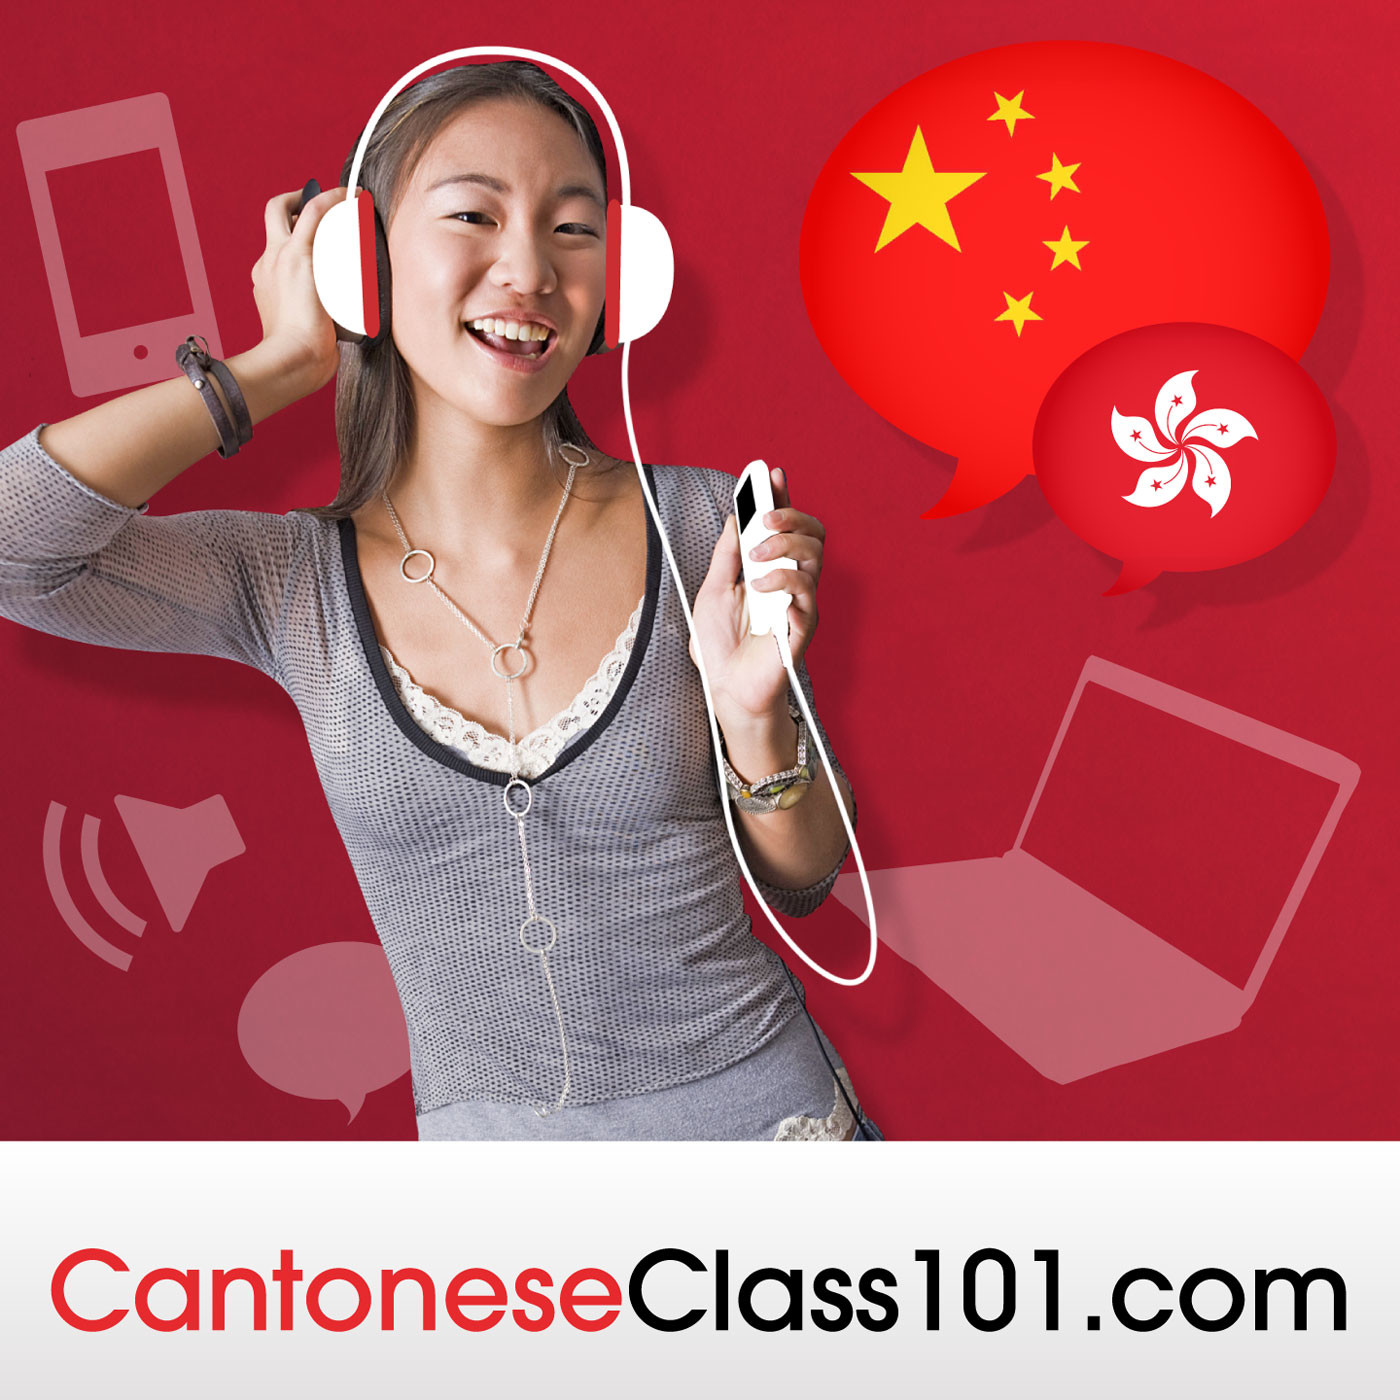 Extensive Reading in Cantonese for Beginners #25 - Homes in the USA